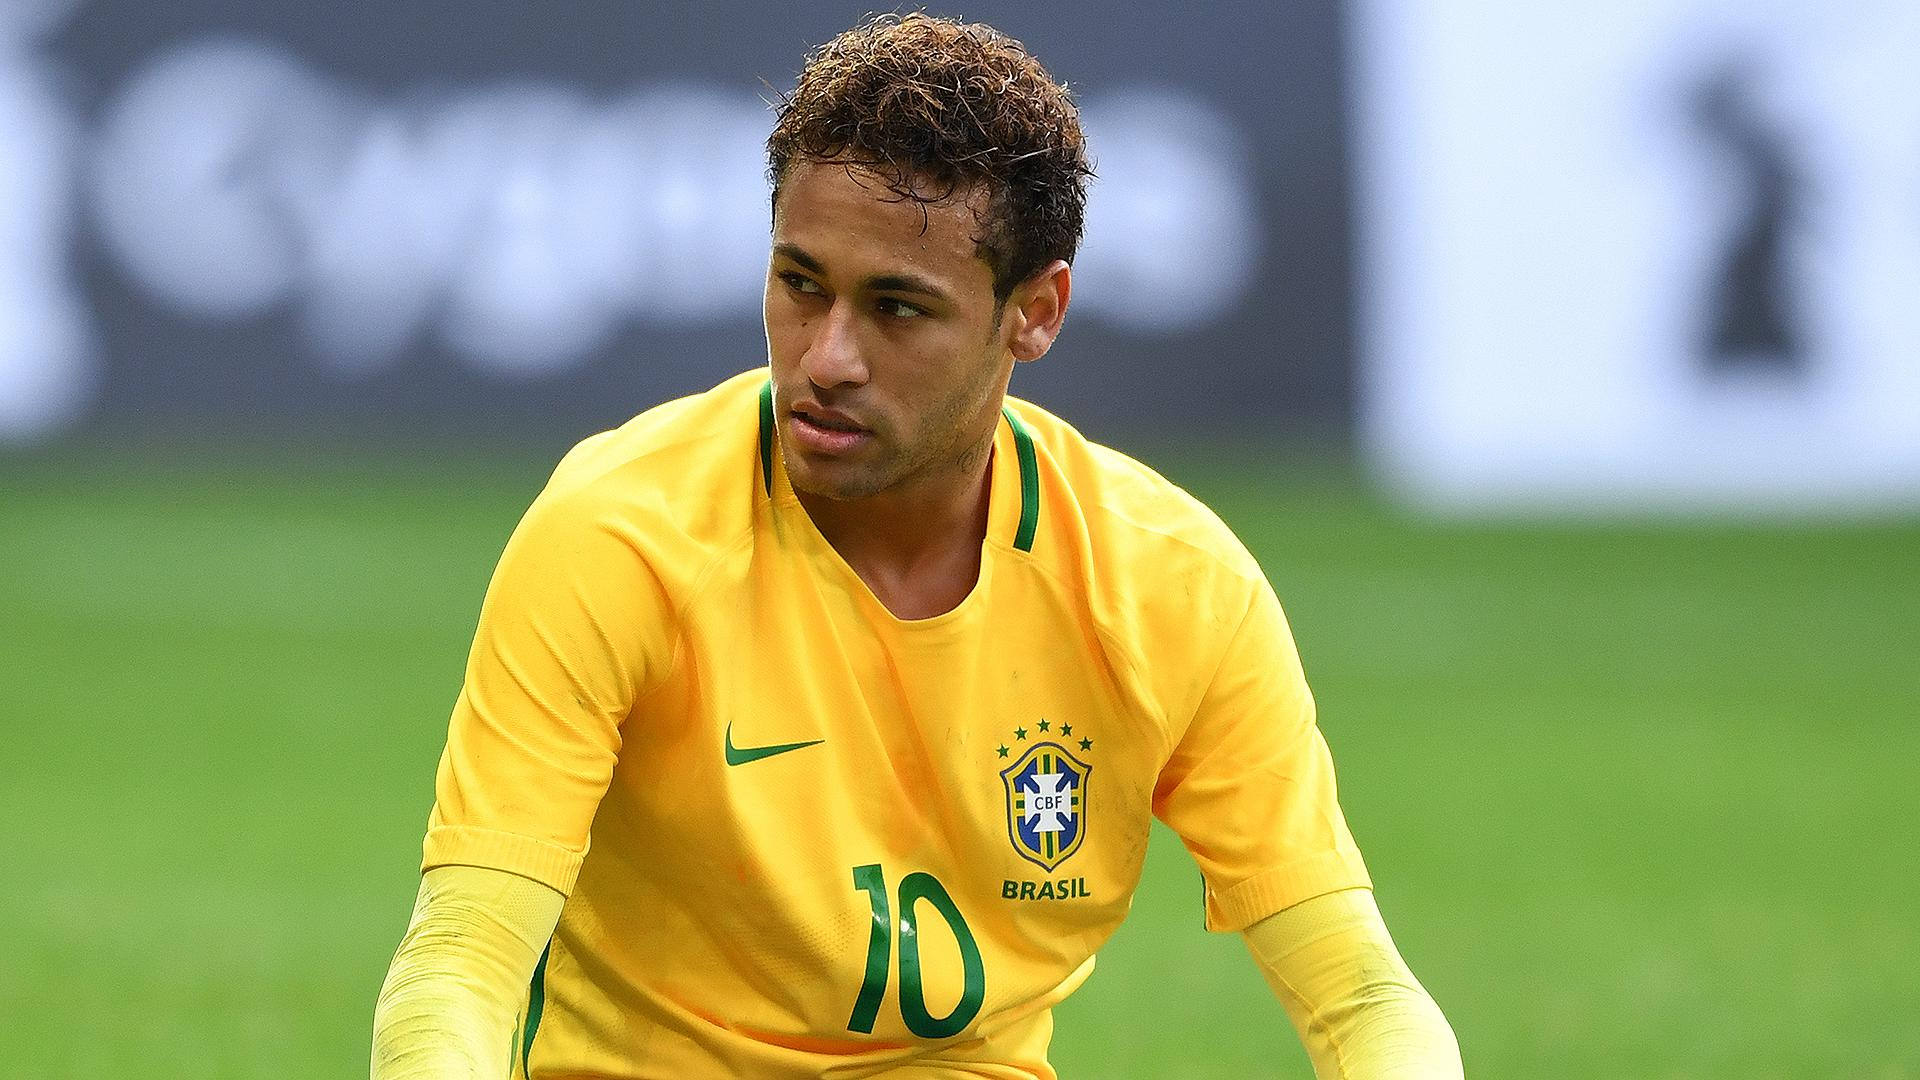 Neymar s lack of focus might seriously affect Brazil s World Cup bid